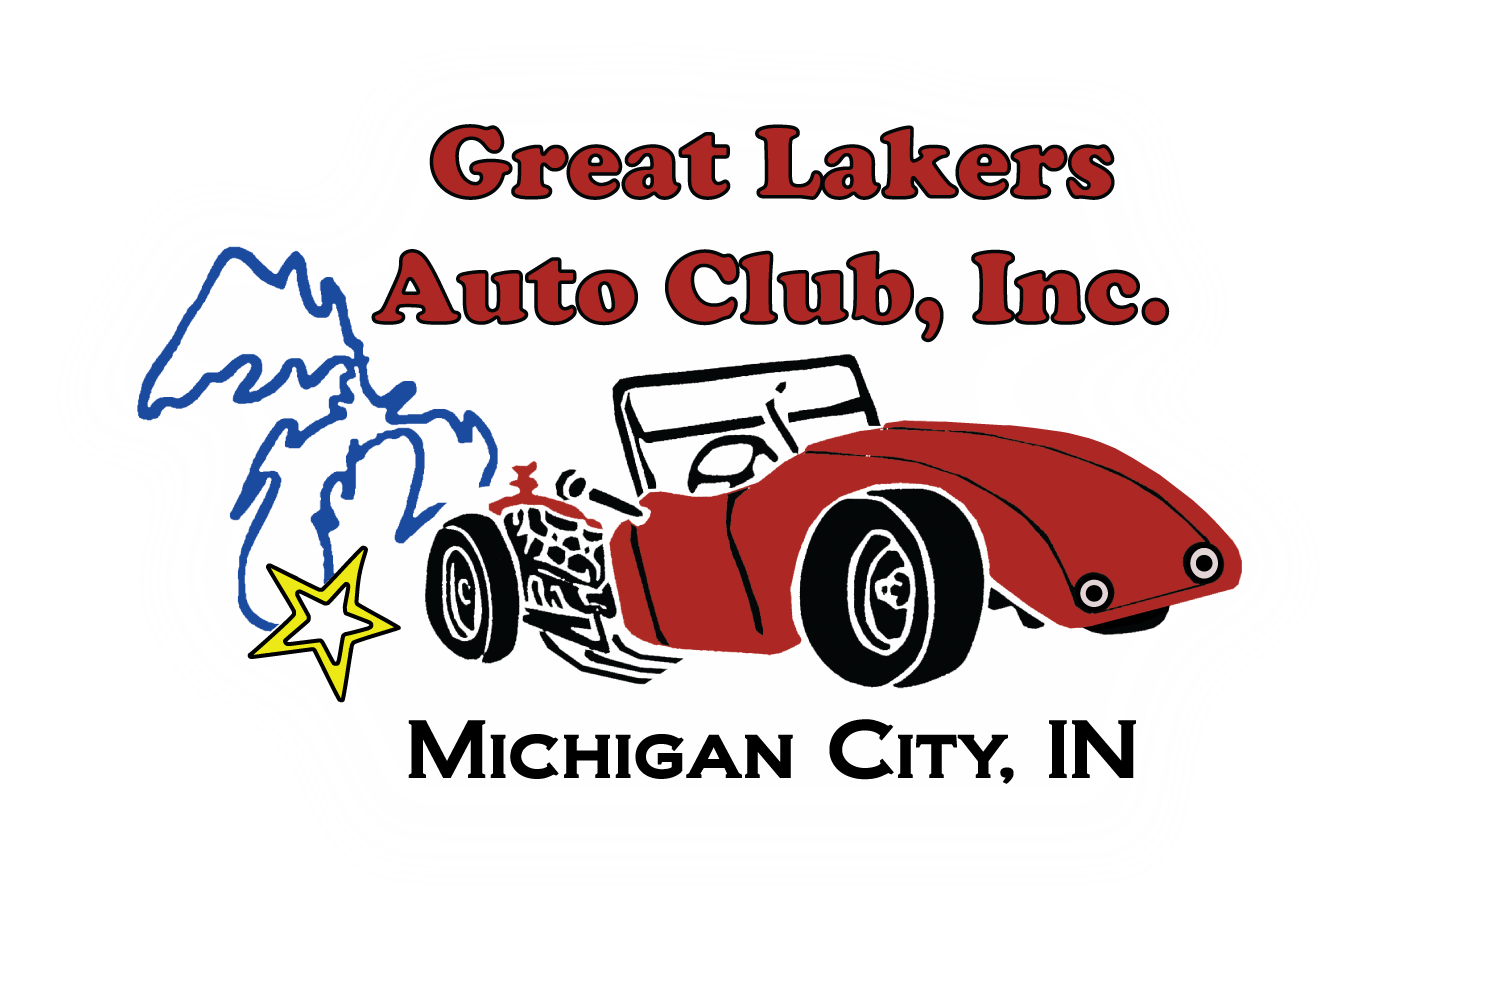 Classic car show clipart banner black and white stock Great Lakers Auto Club, Inc. banner black and white stock